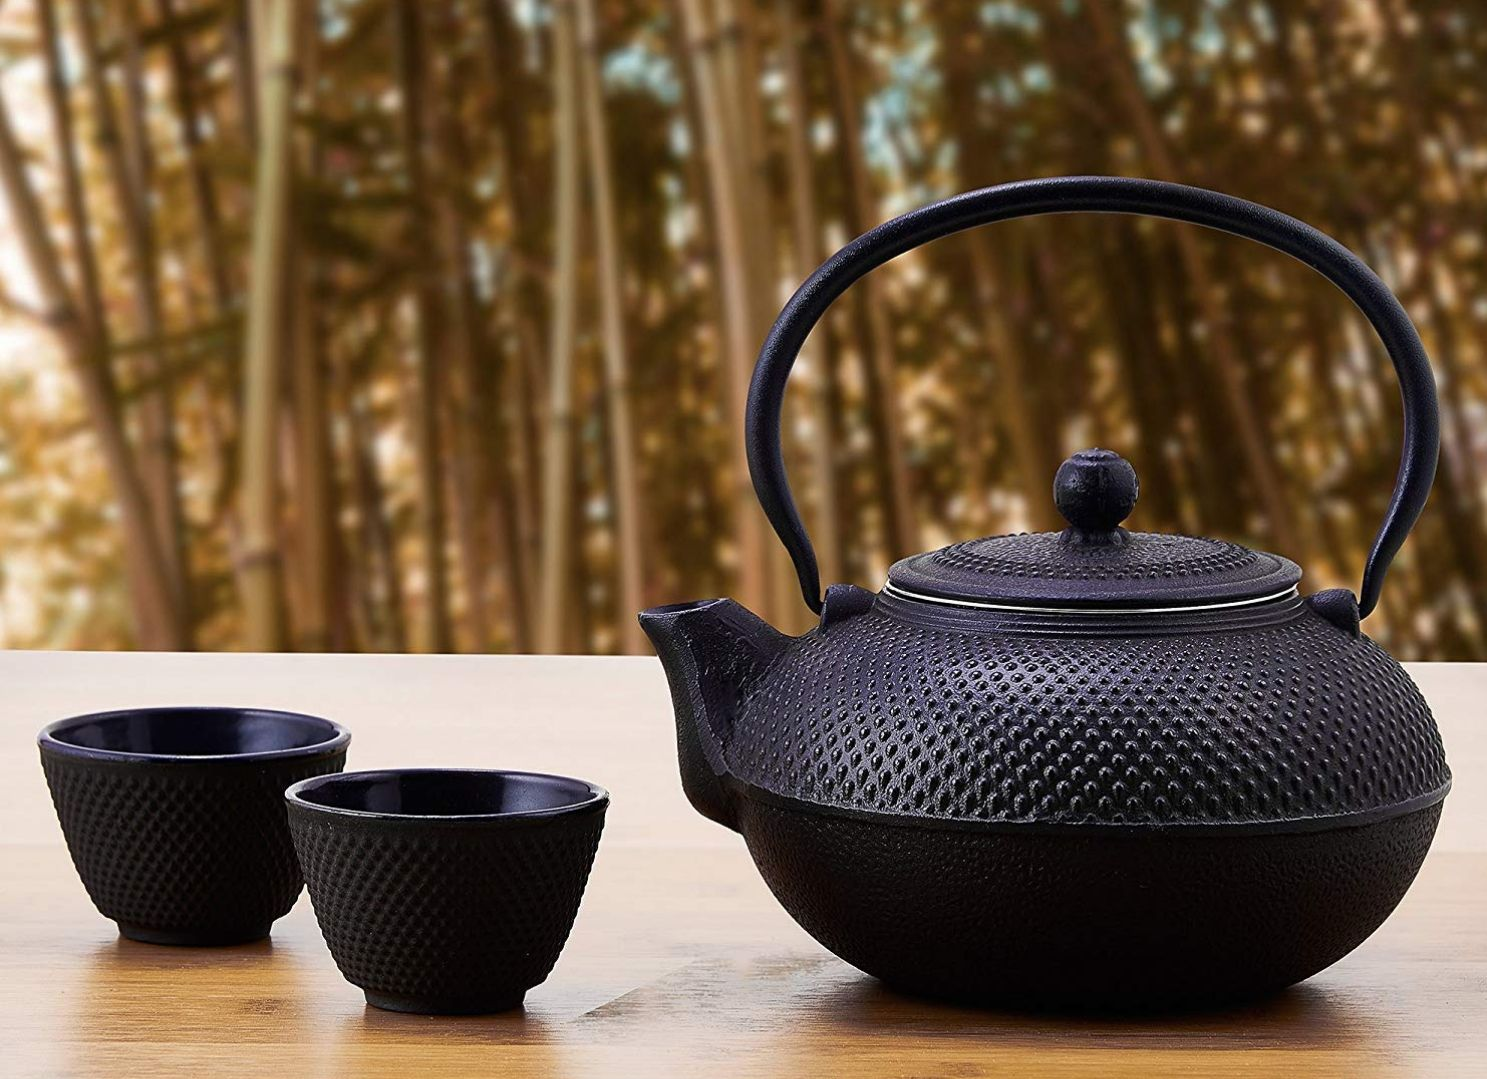 kitchen-tools-guro-cast-iron-sigma-teapot